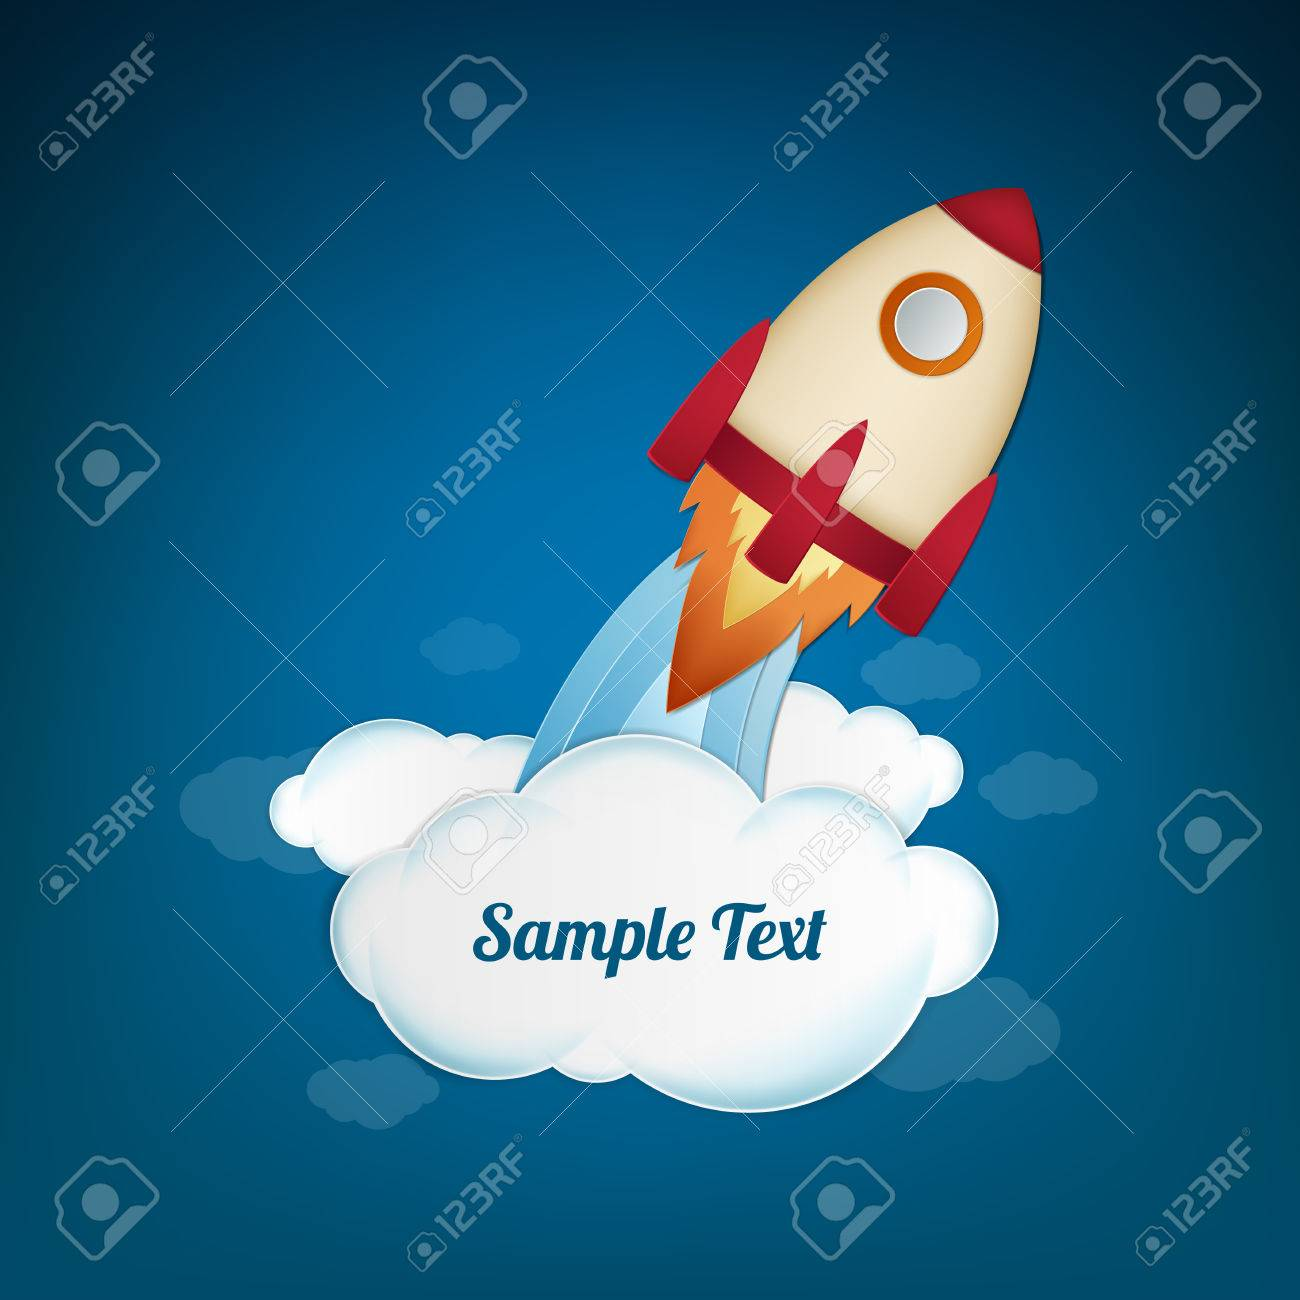 Space rocket launch. Start up concept. Vector illustration. Can be used for presentation, web page, booklet, etc. - 40163276